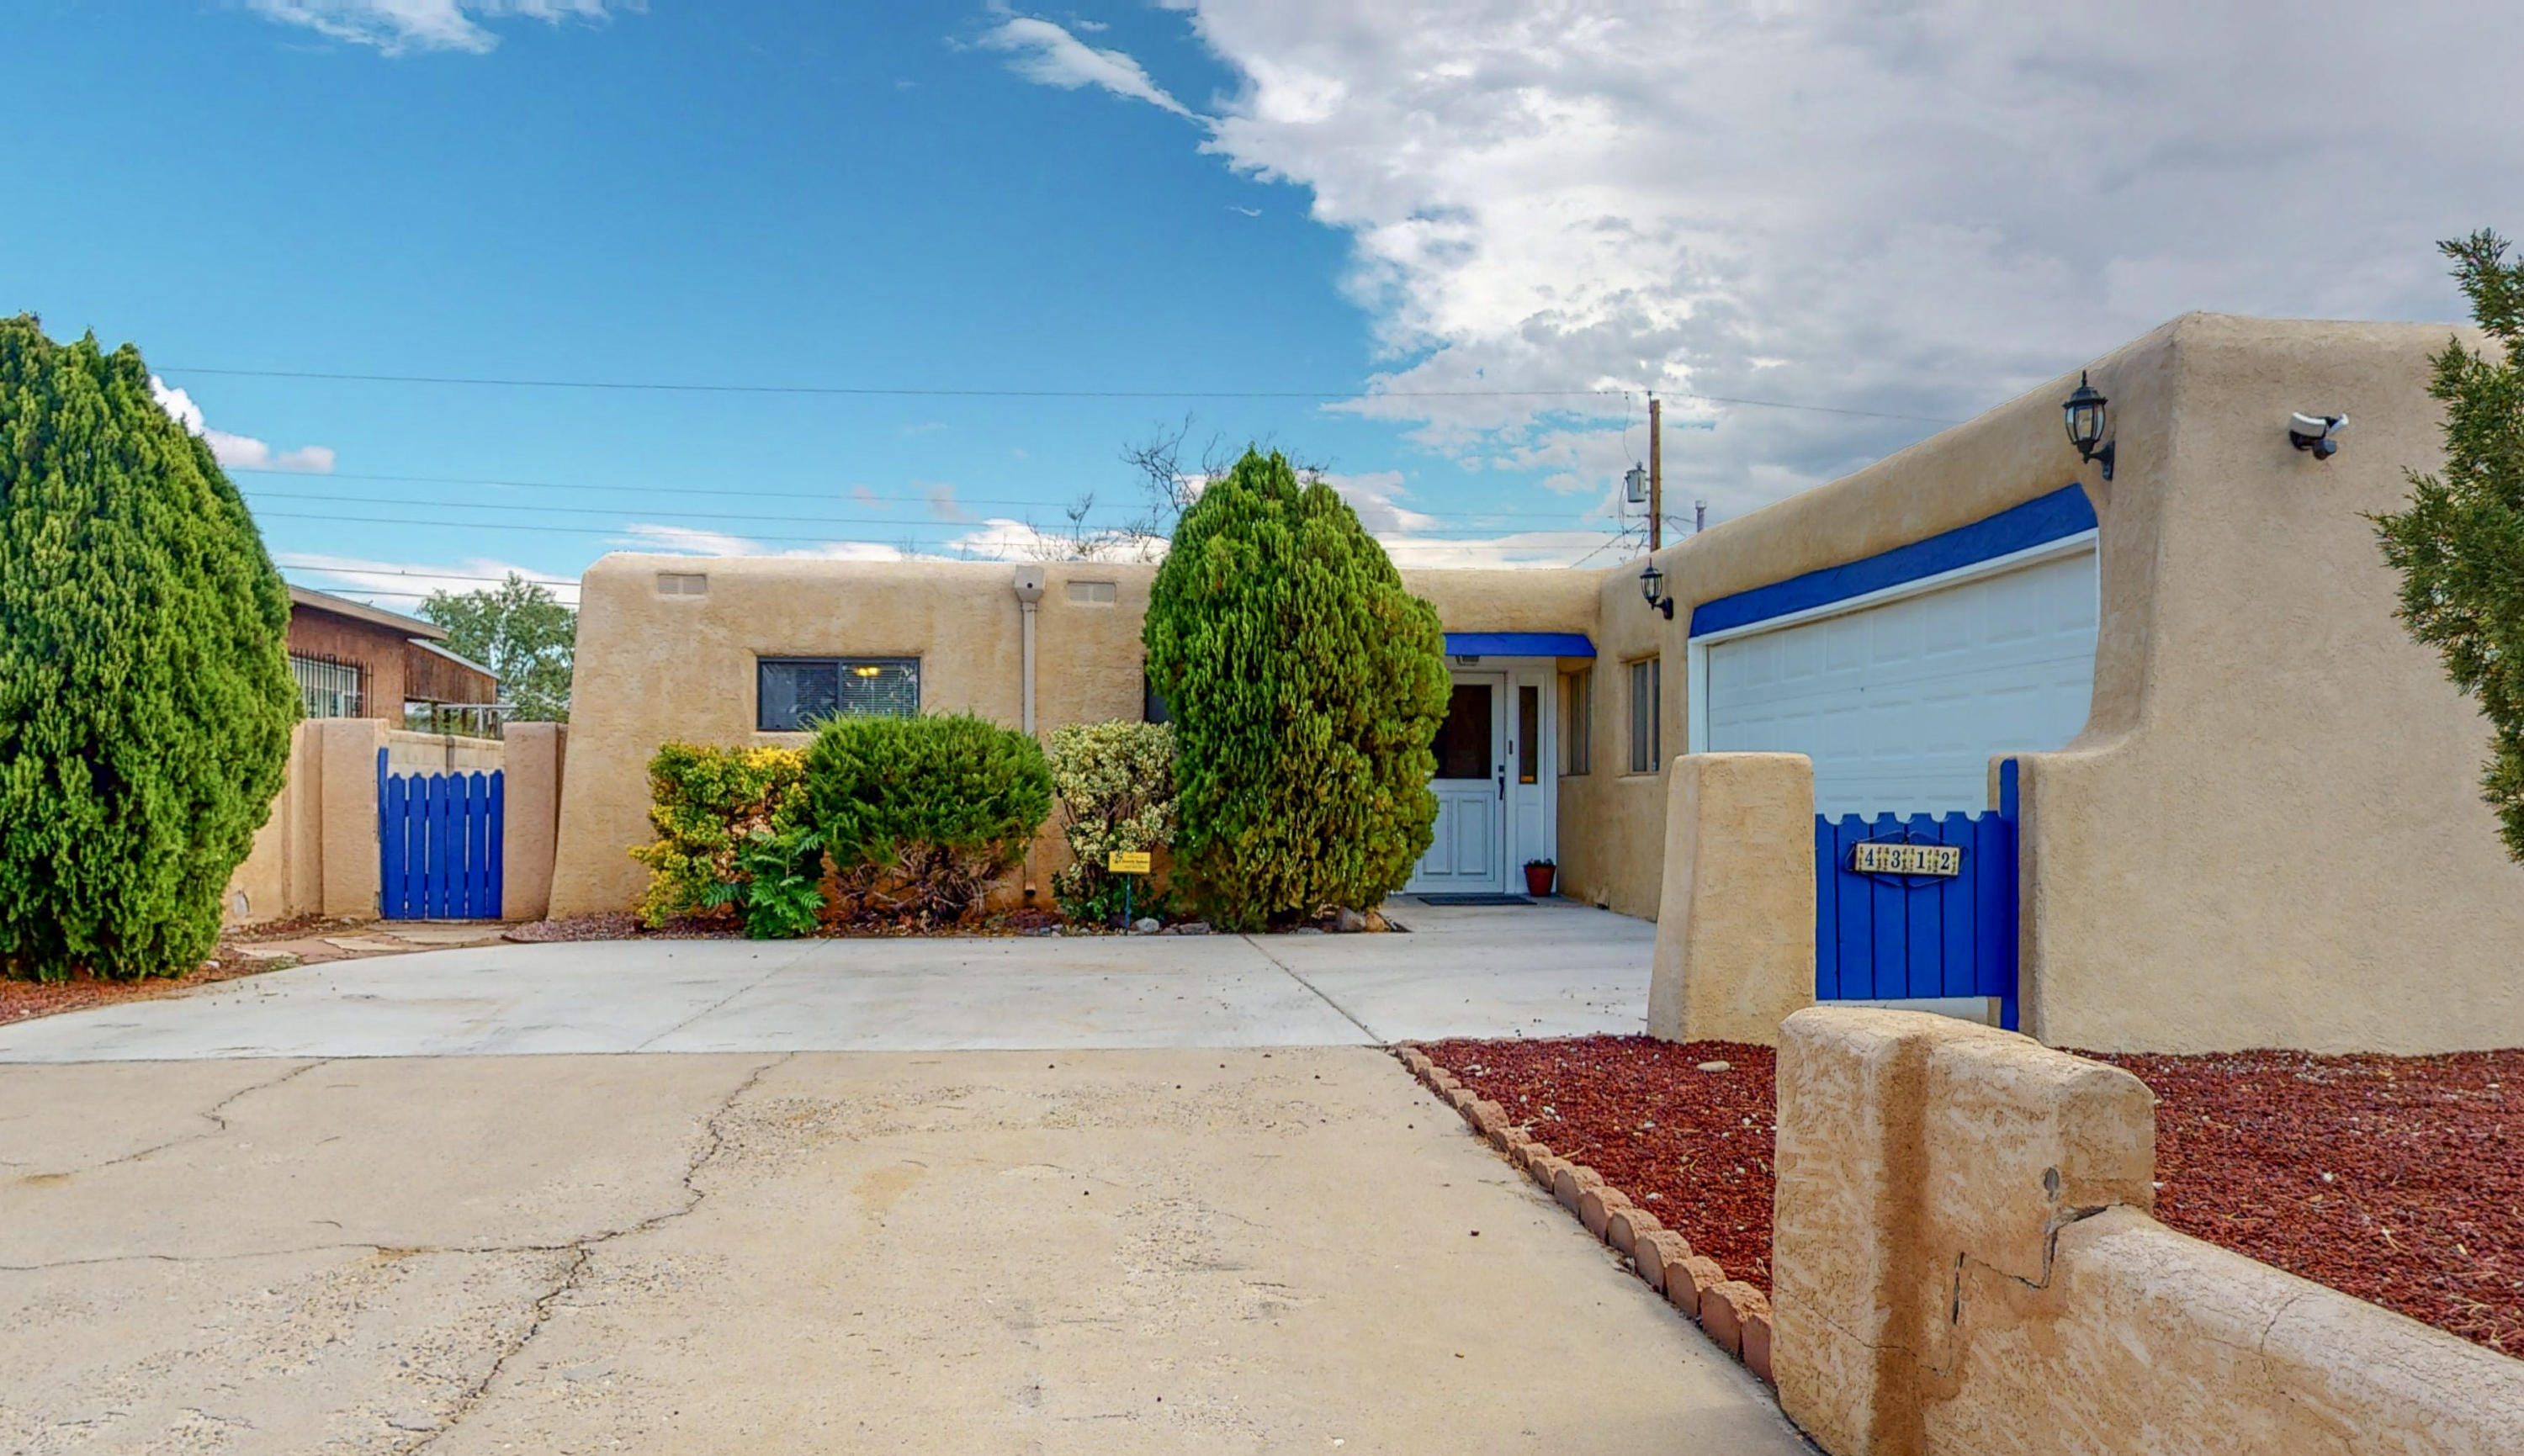 This one will sell fast!  Don't miss this great opportunity to own a home that is conveniently located near I-25, shopping, restaurants, schools and public transportation.  Home features new roof (2020) and remodeled full and master bathrooms.  Bonus room is not included in SF.  Sunroom can be used as home schooling room, office, gym, game room....or whatever works best for you!  The spacious two-car garage has plenty of storage room.    You will love the built-ins and fireplace.The backyard is large and ready for you to make it your own. This home is a must see.